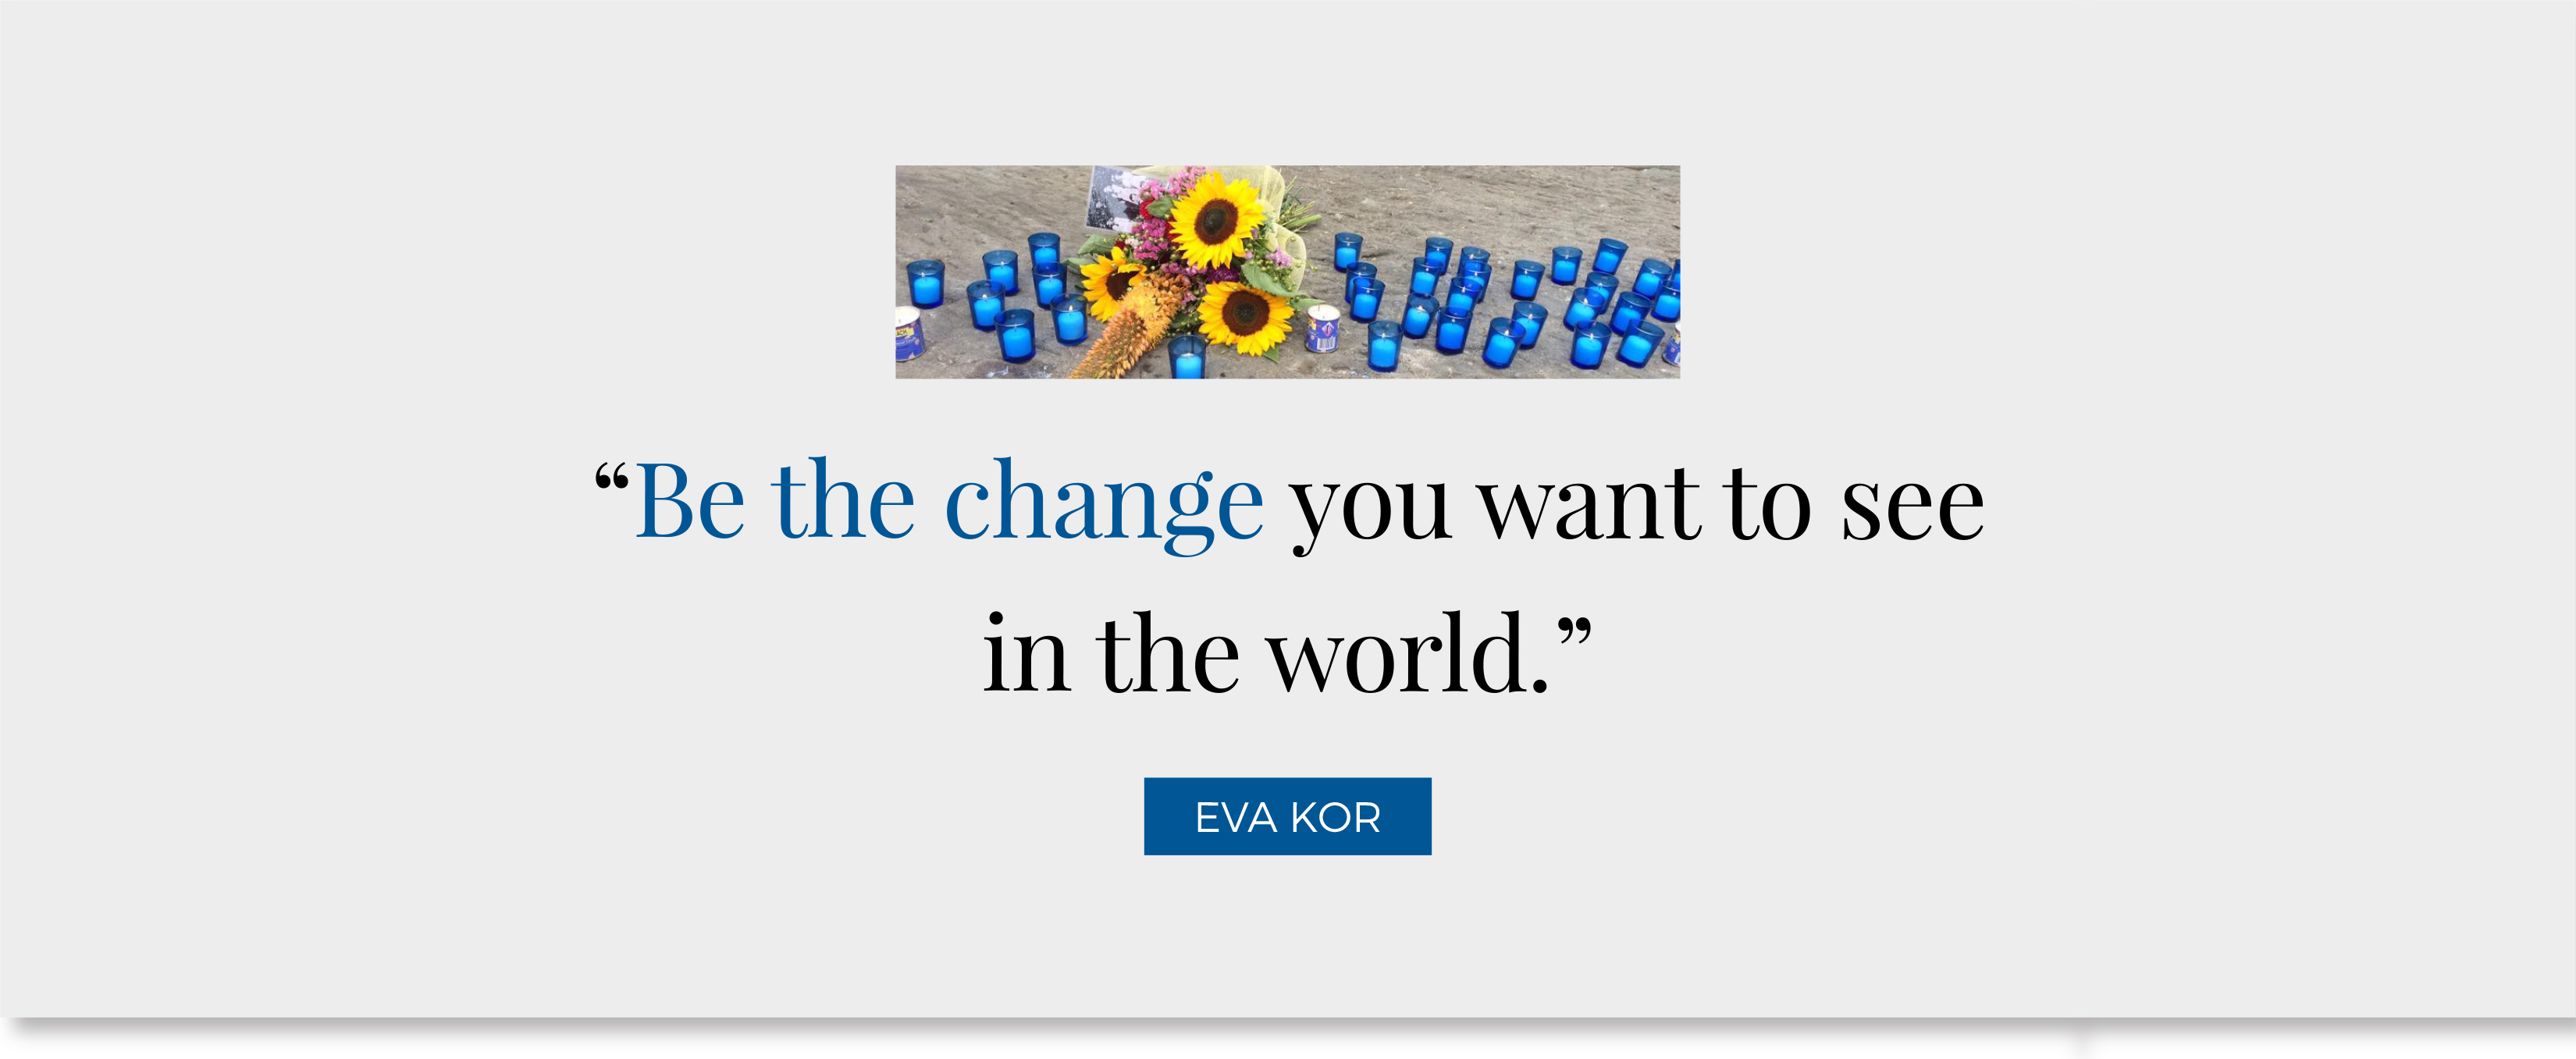 """Be the change you want to see in the world."" - Eva Kor"